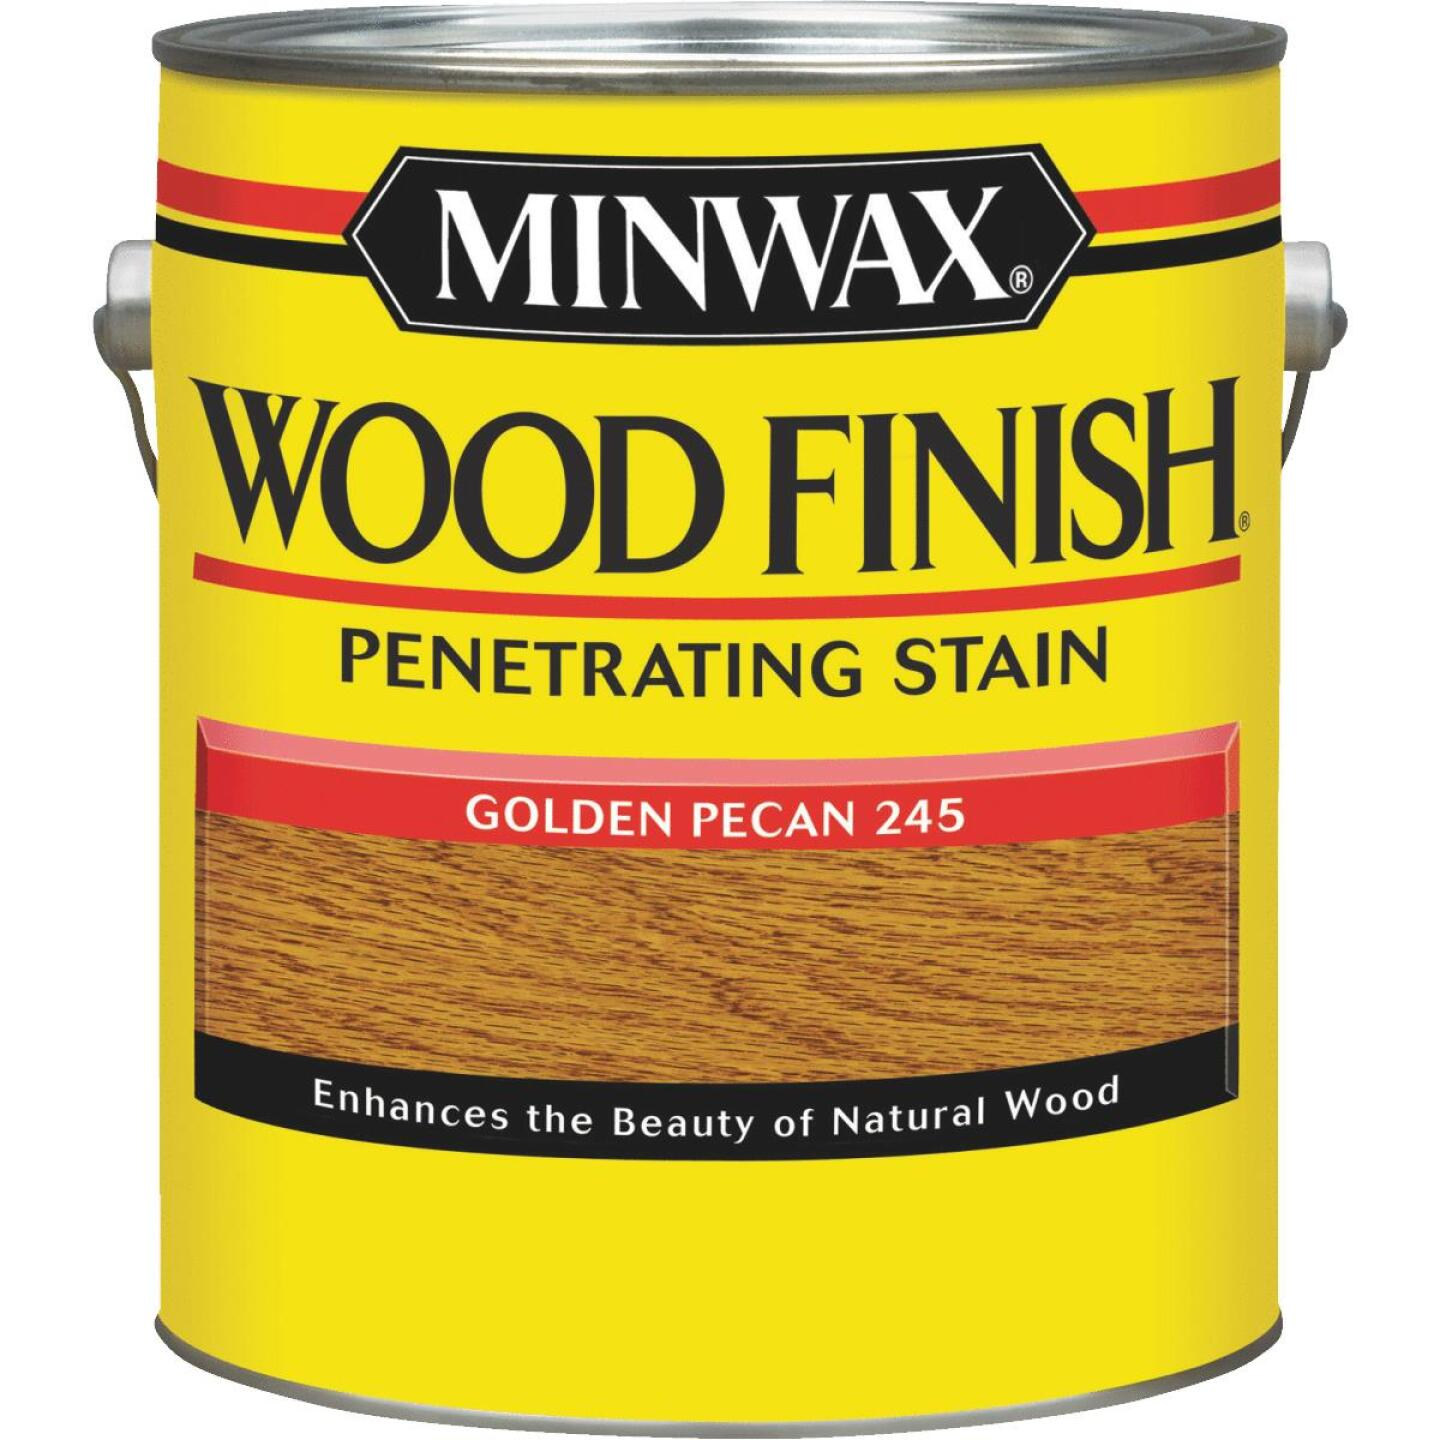 Minwax Wood Finish Penetrating Stain, Golden Pecan, 1 Gal. Image 1